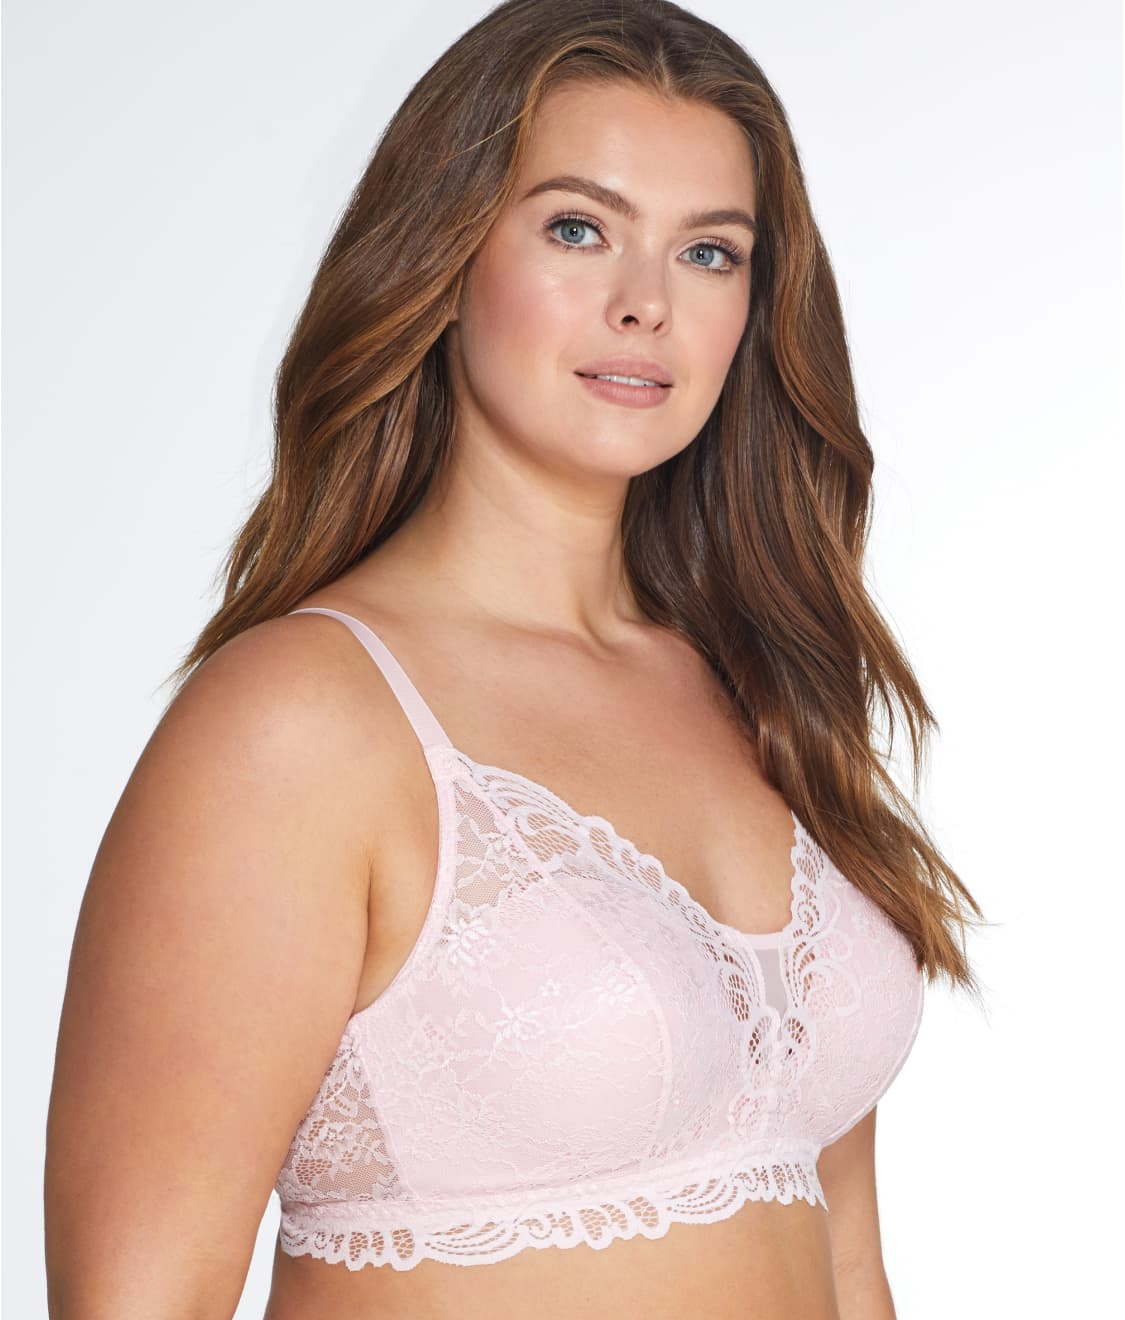 6a5076a2d0 See Lace Desire Convertible Wire-Free Bra in Gentle Peach